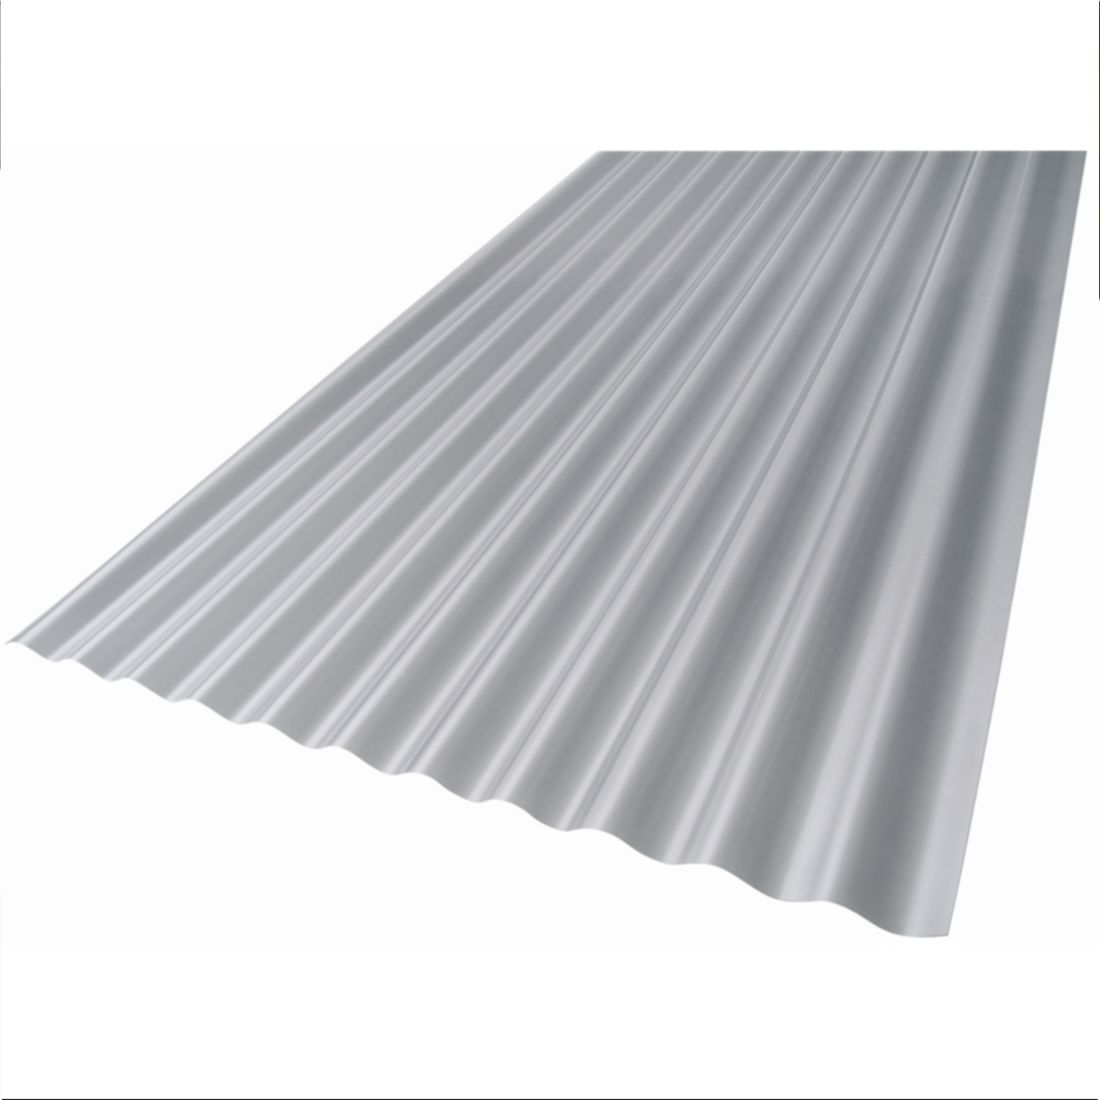 CoolTech Corrugated Grey 3000 x 860mm